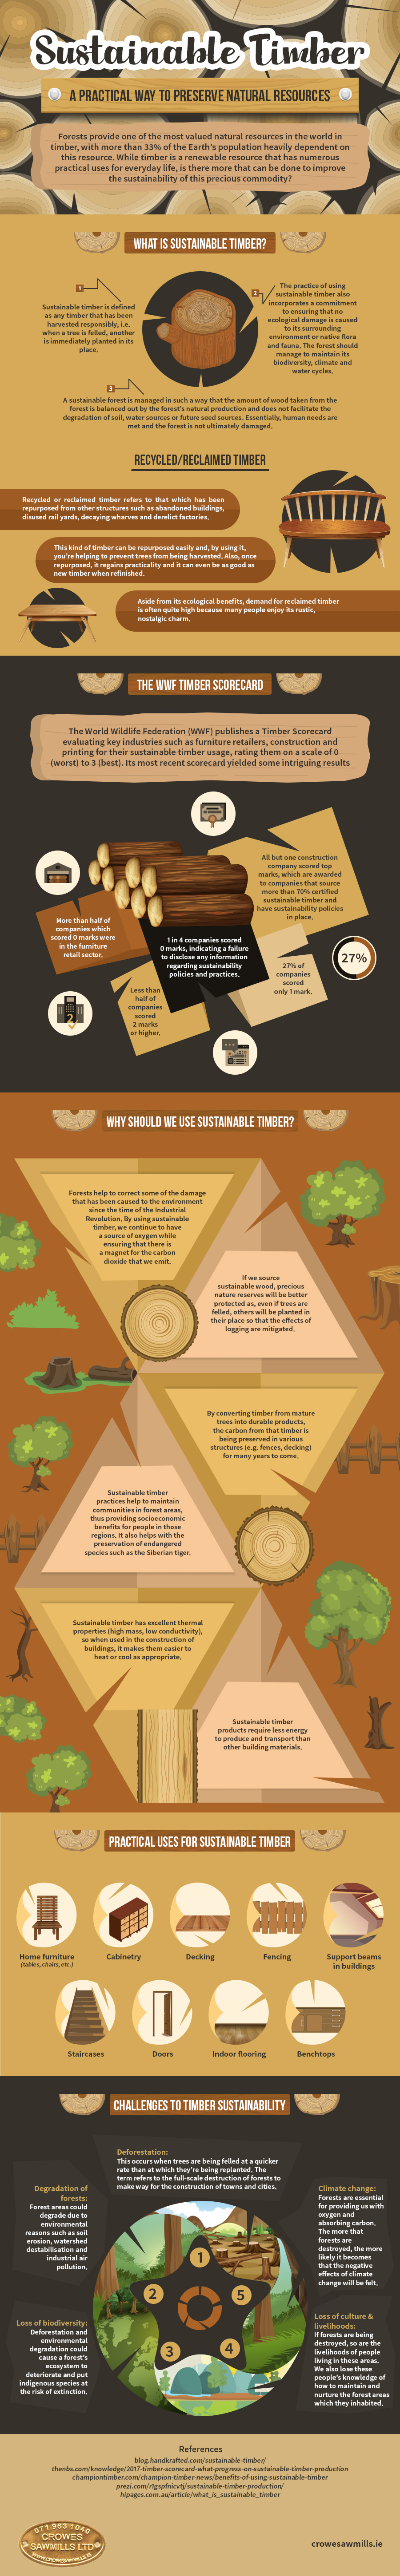 Sustainable Timber- A practical way to preserve Natural Resources(Infographic)